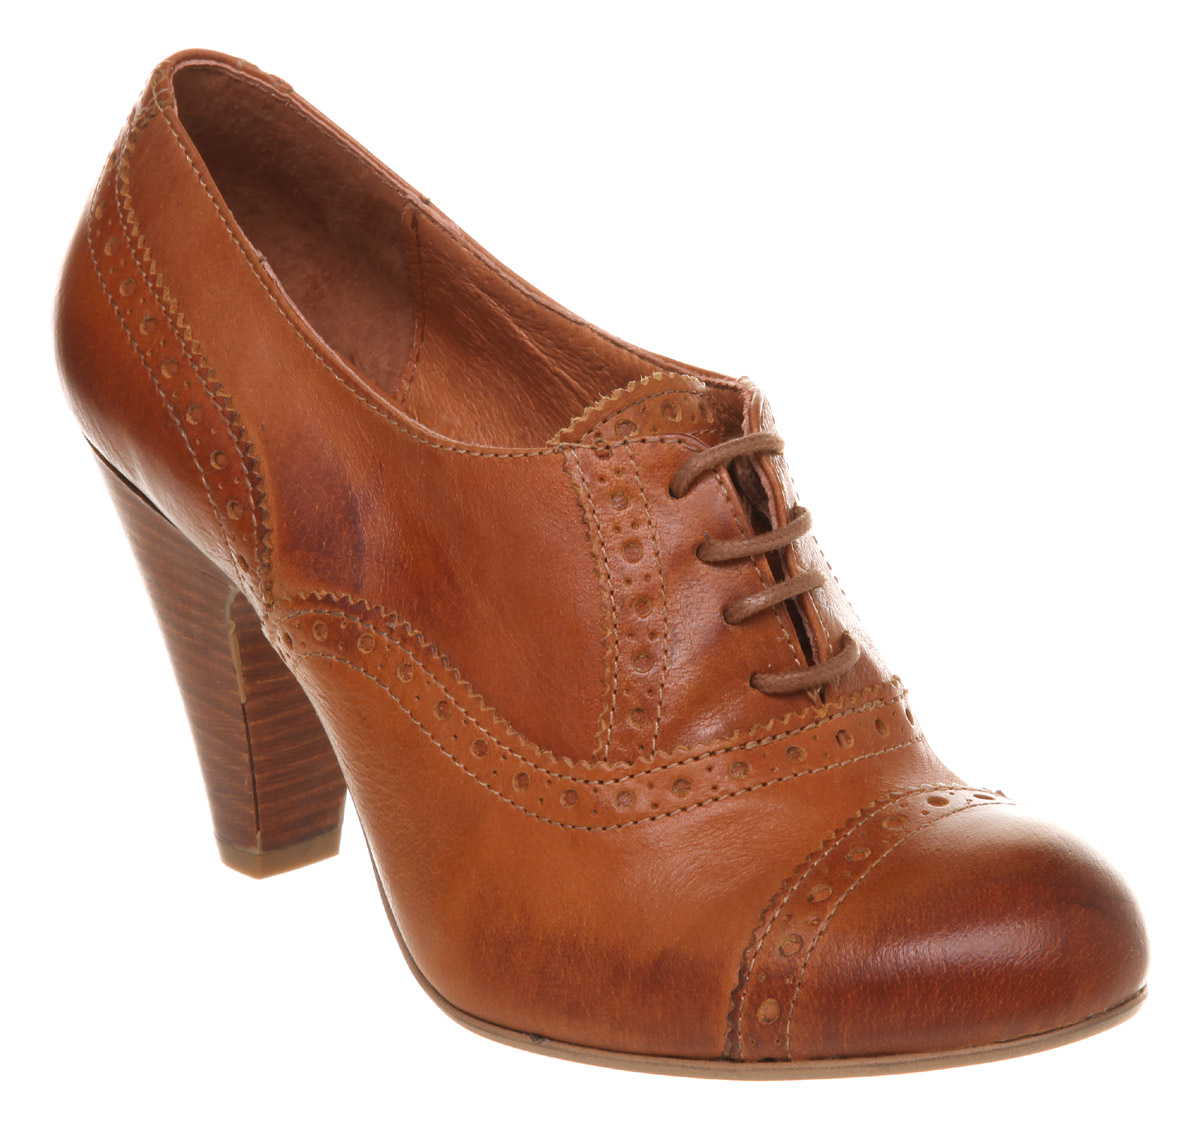 Image Is Loading Womens Office Brogue Baby Tan Leather Heels